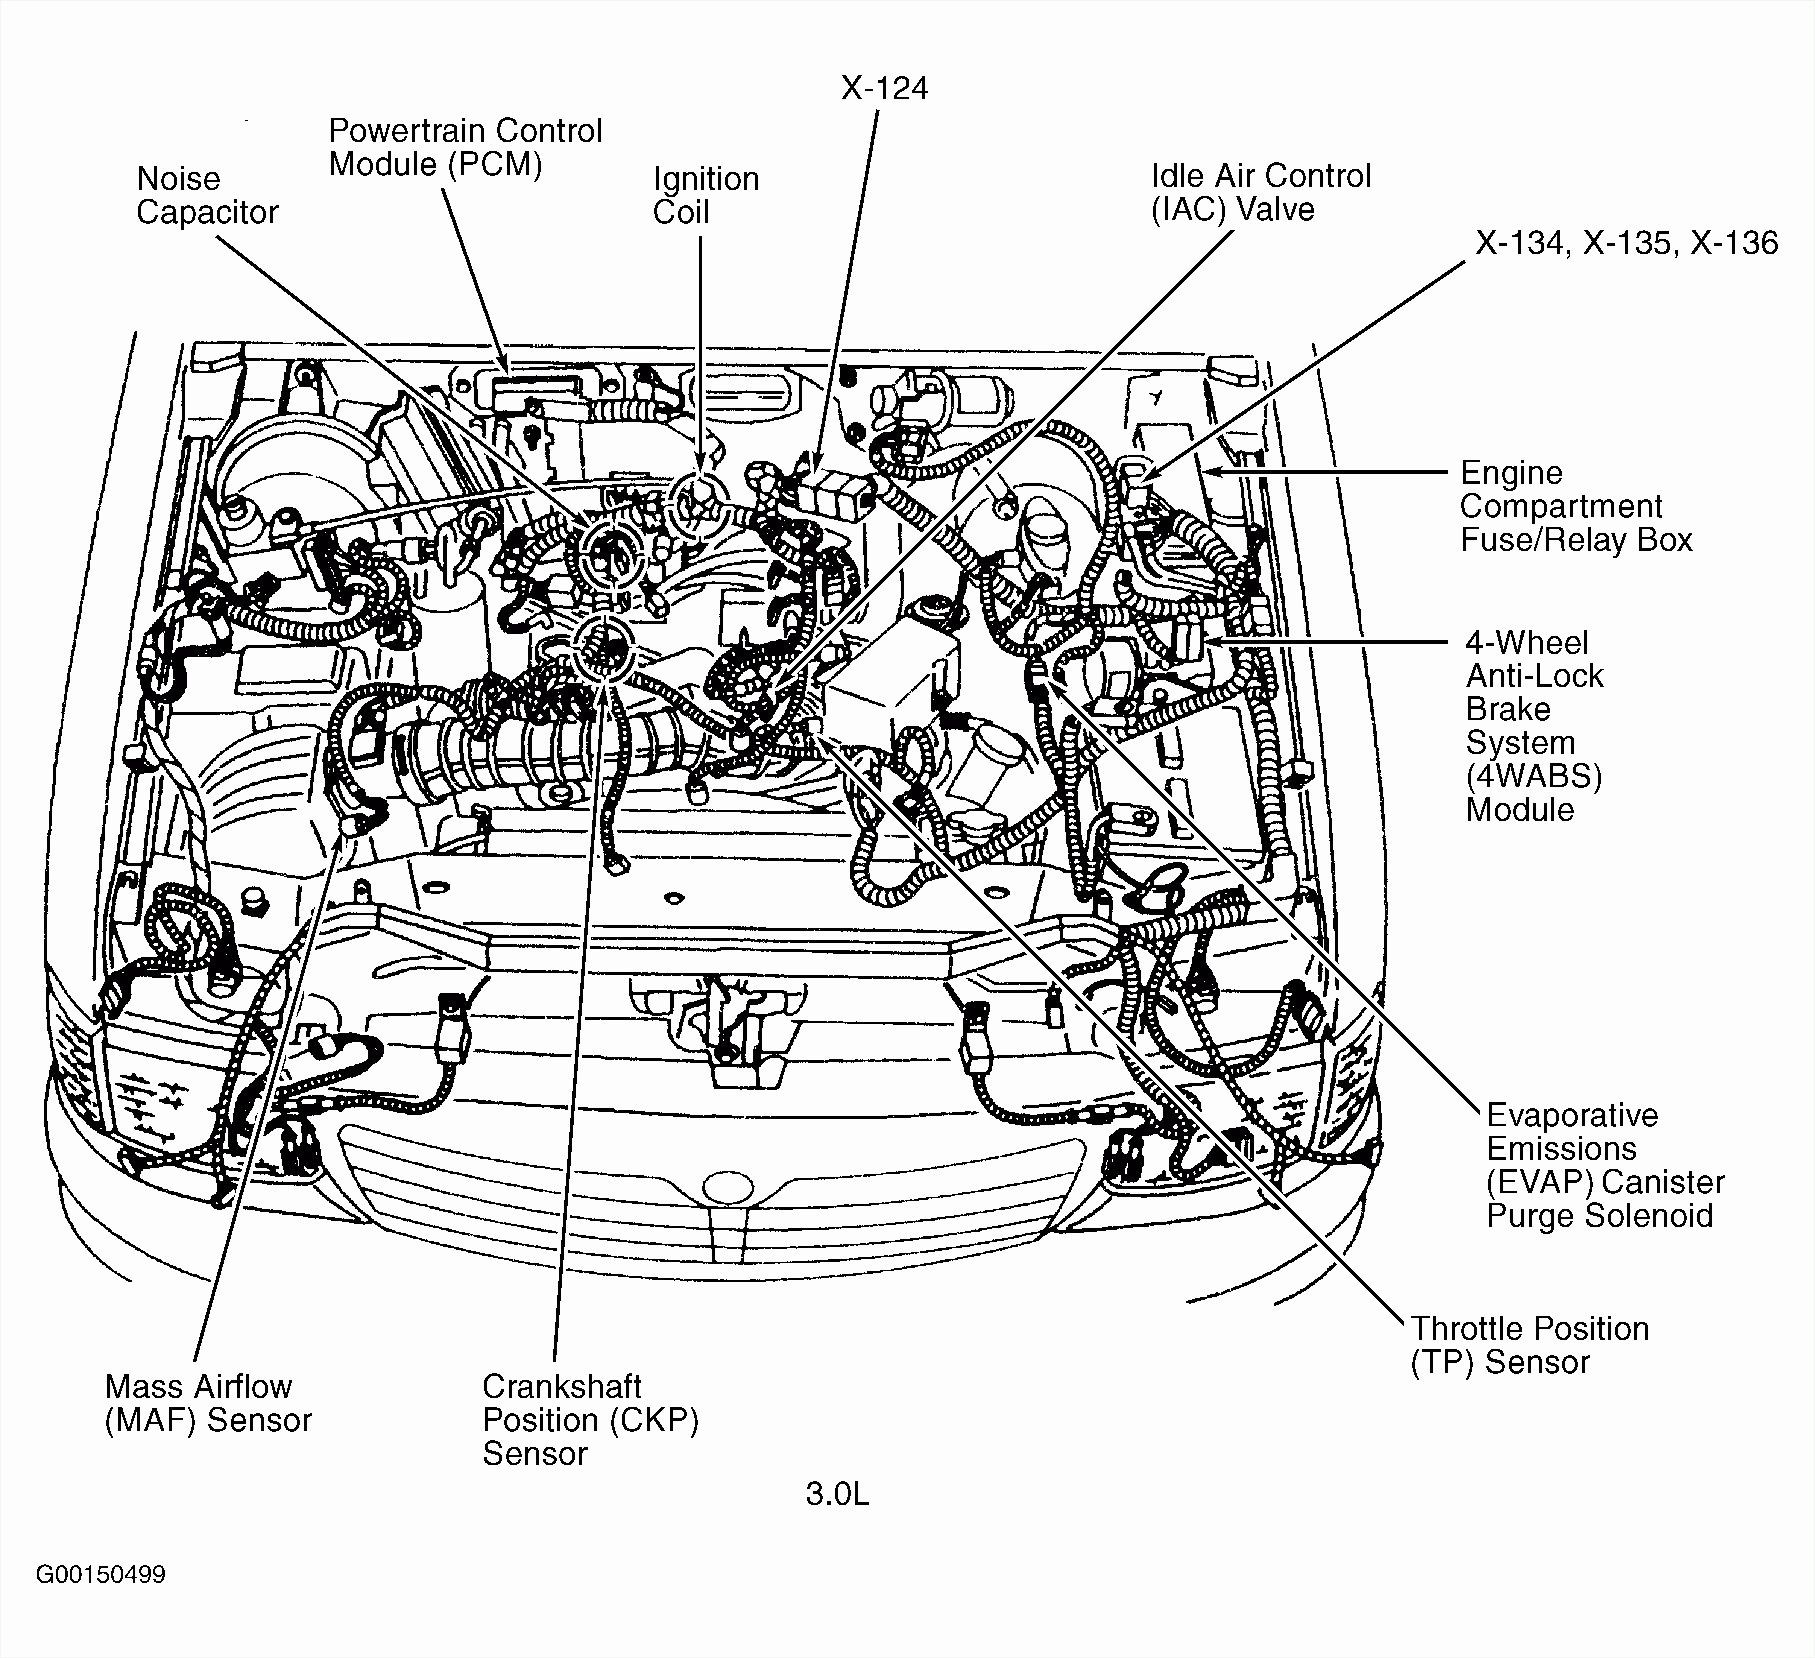 Ford Taurus 2002 Engine Fuse Box Diagram